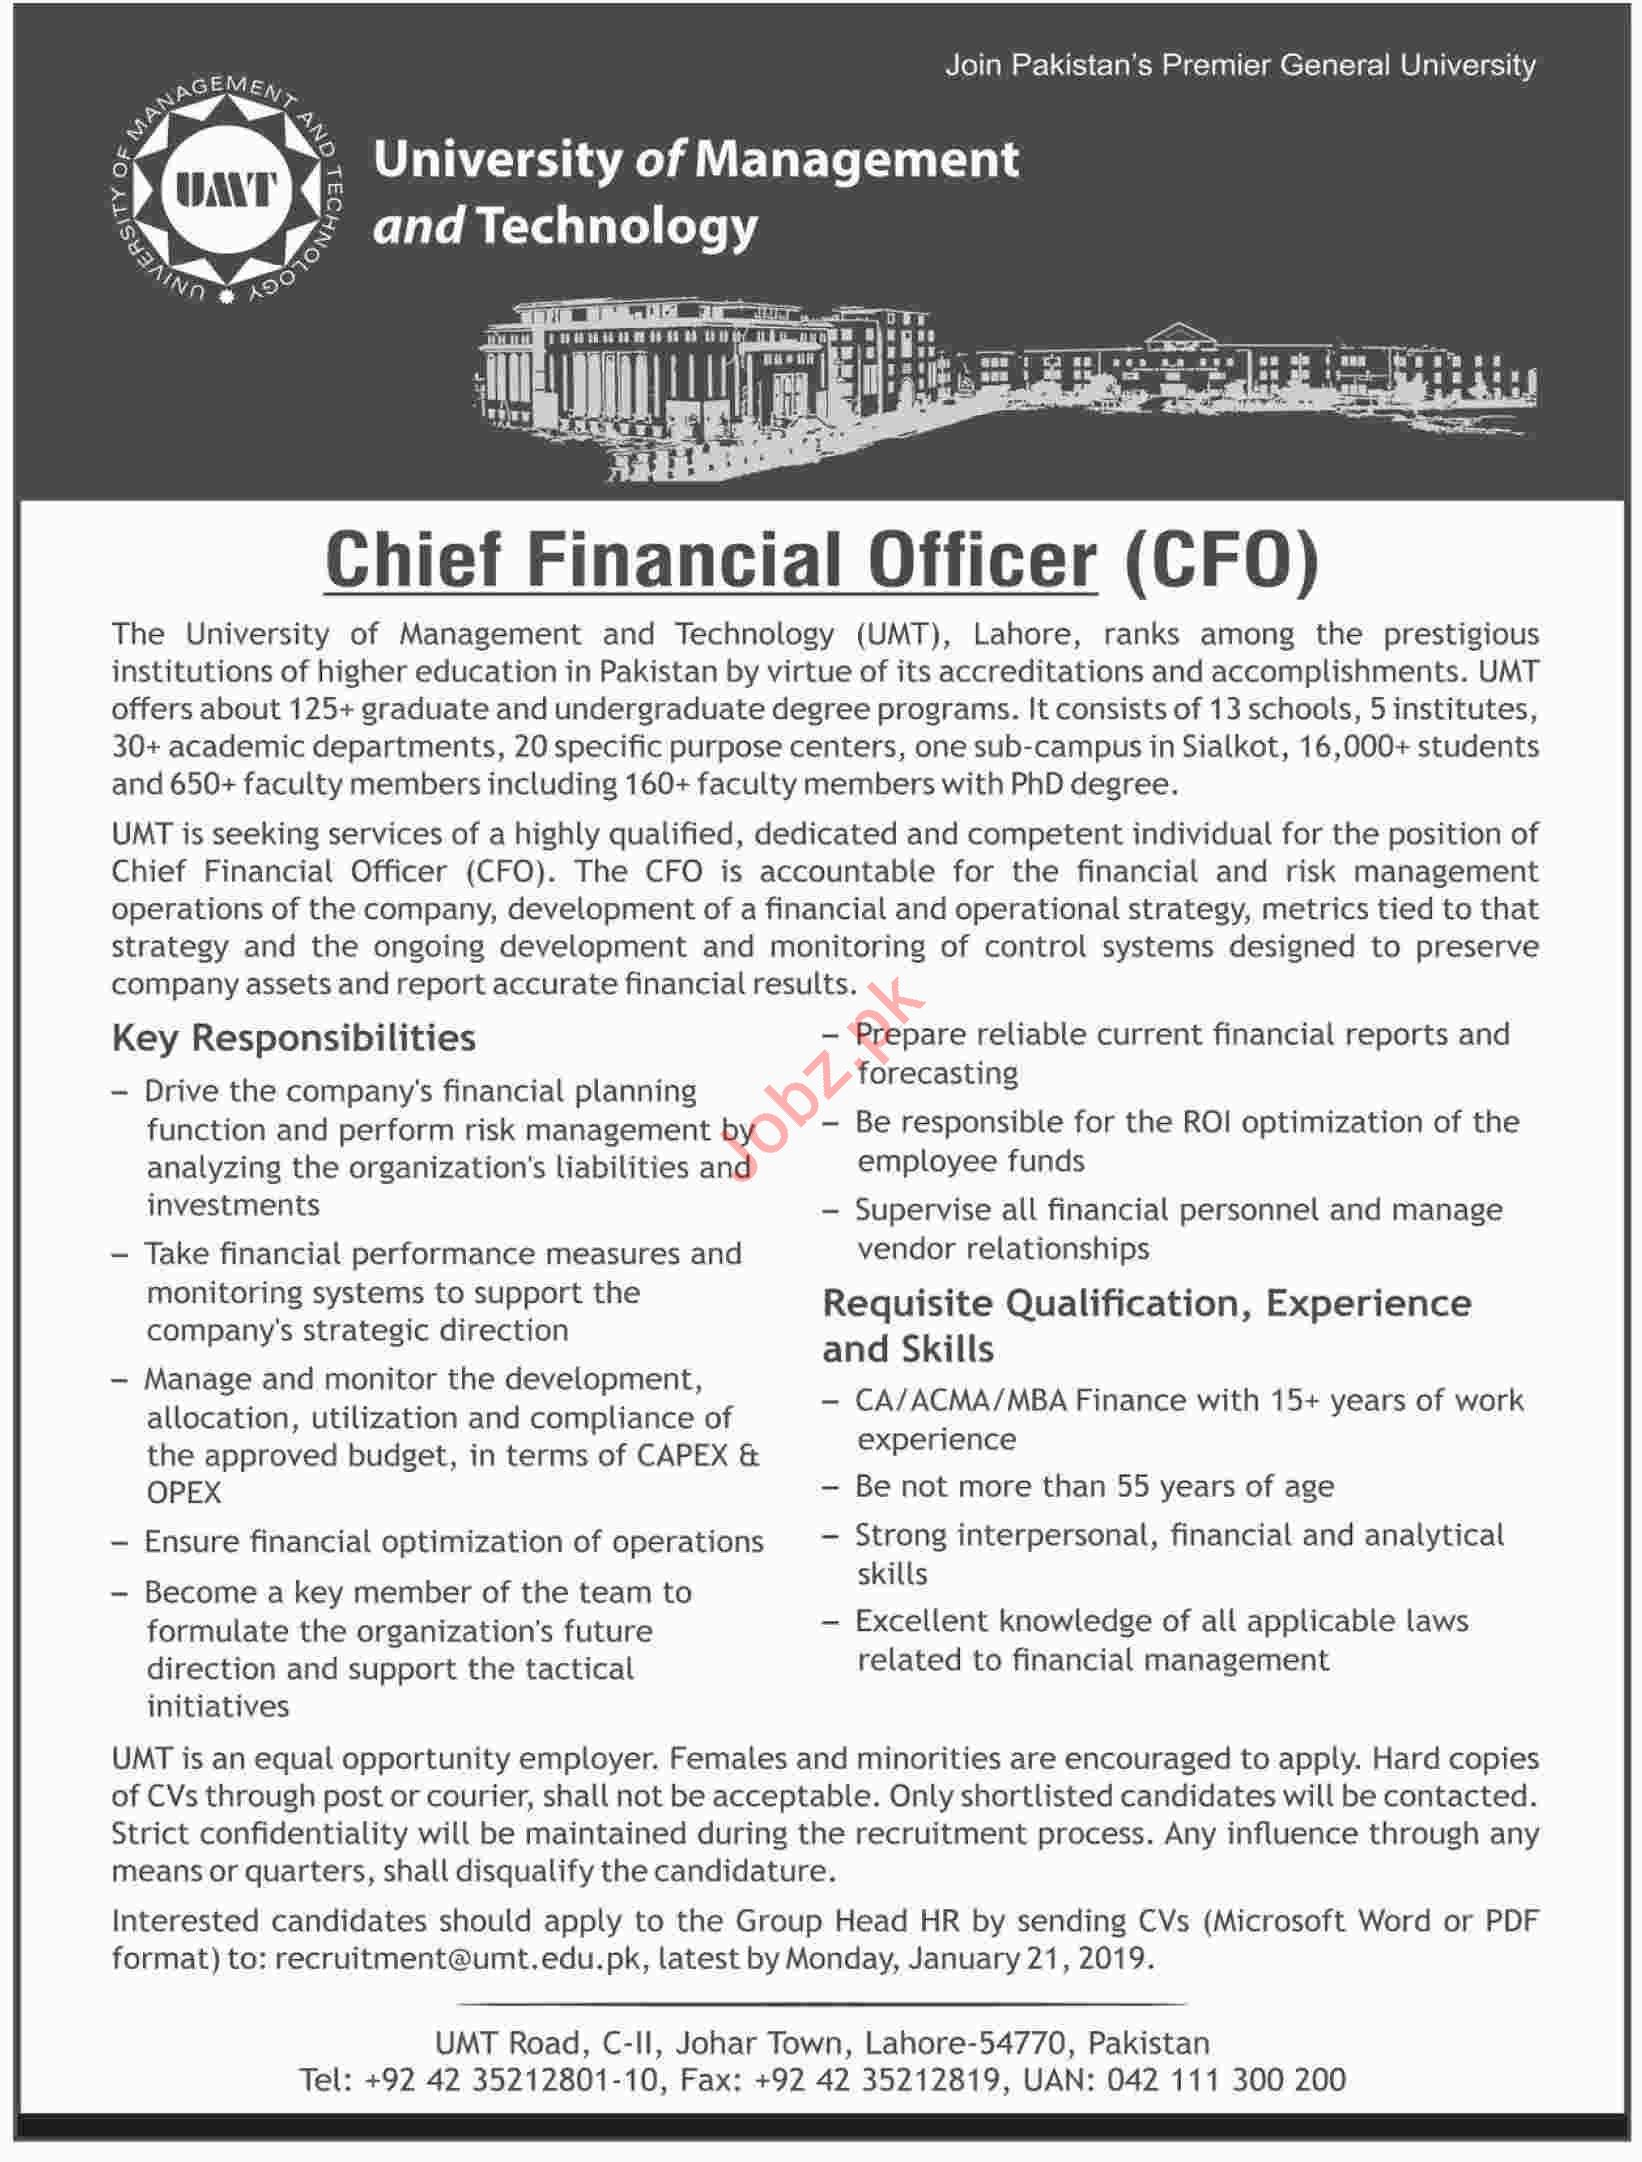 University of Management and Technology CFO Jobs 2019